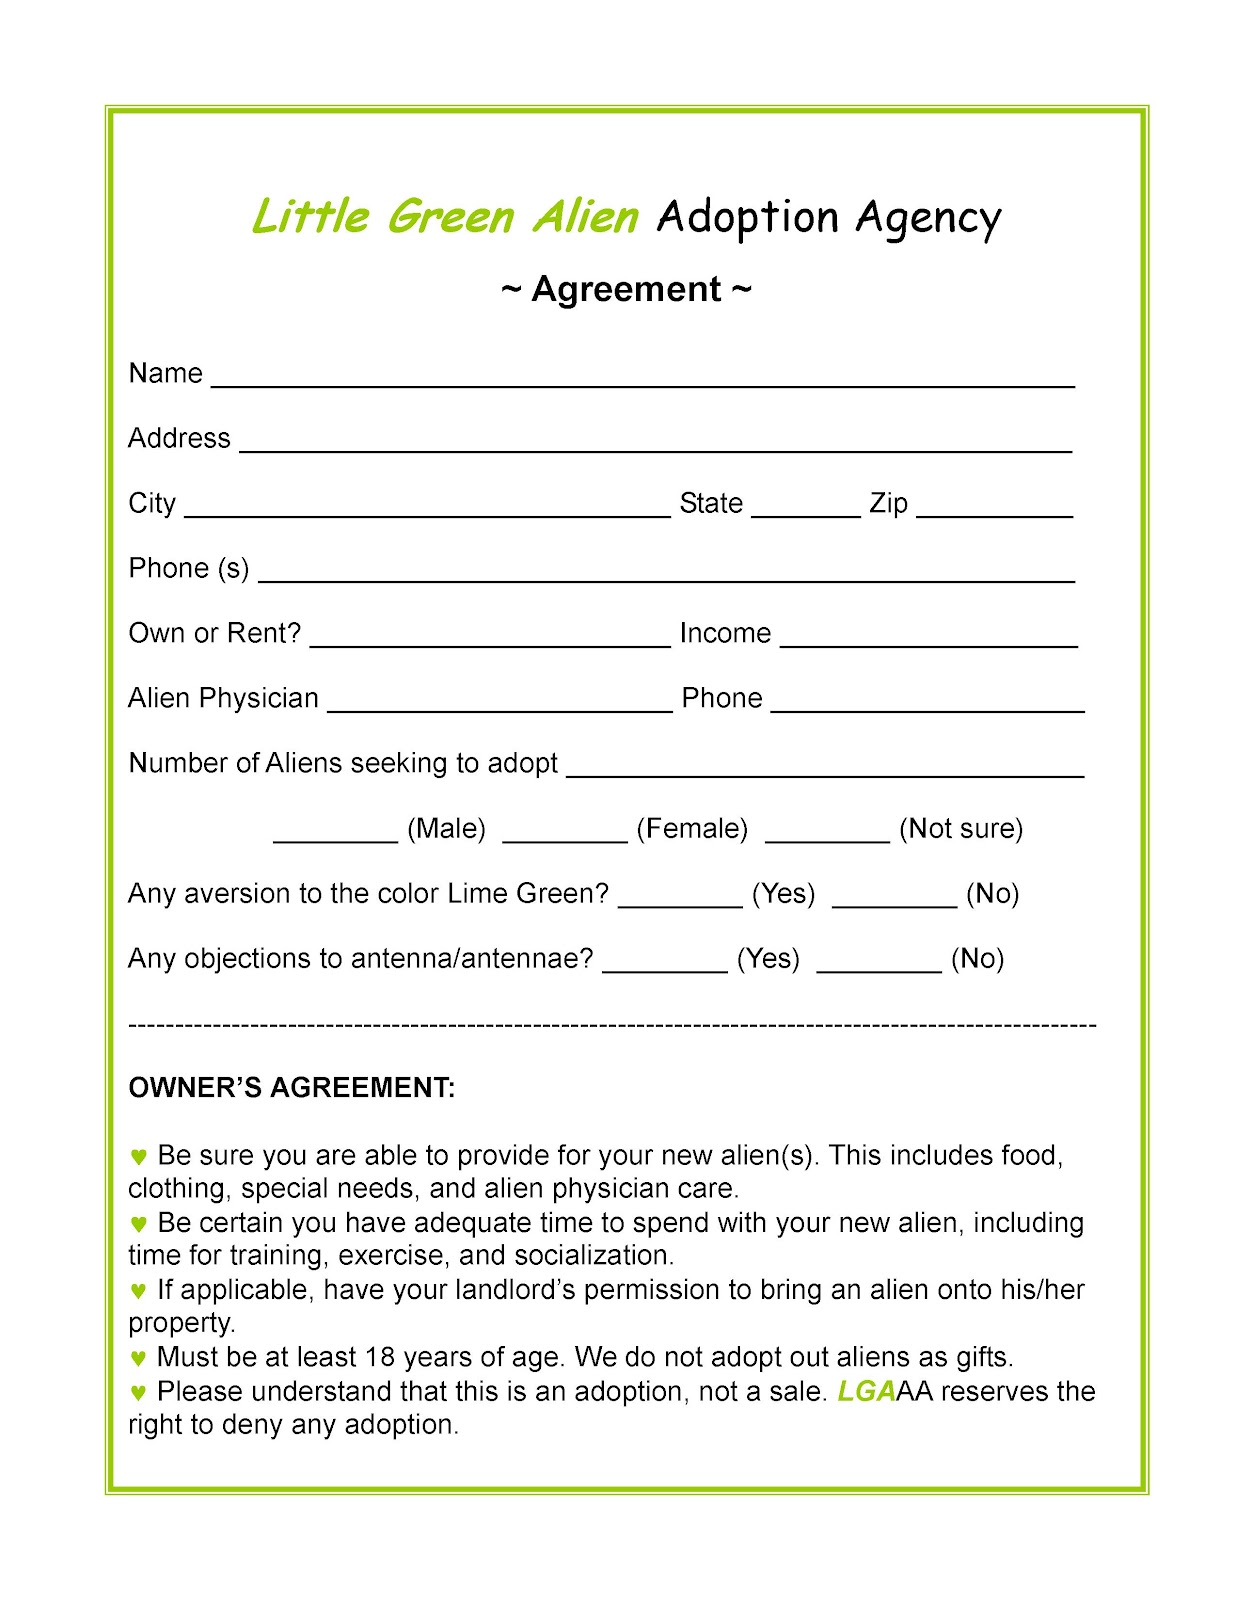 Essay about adoption